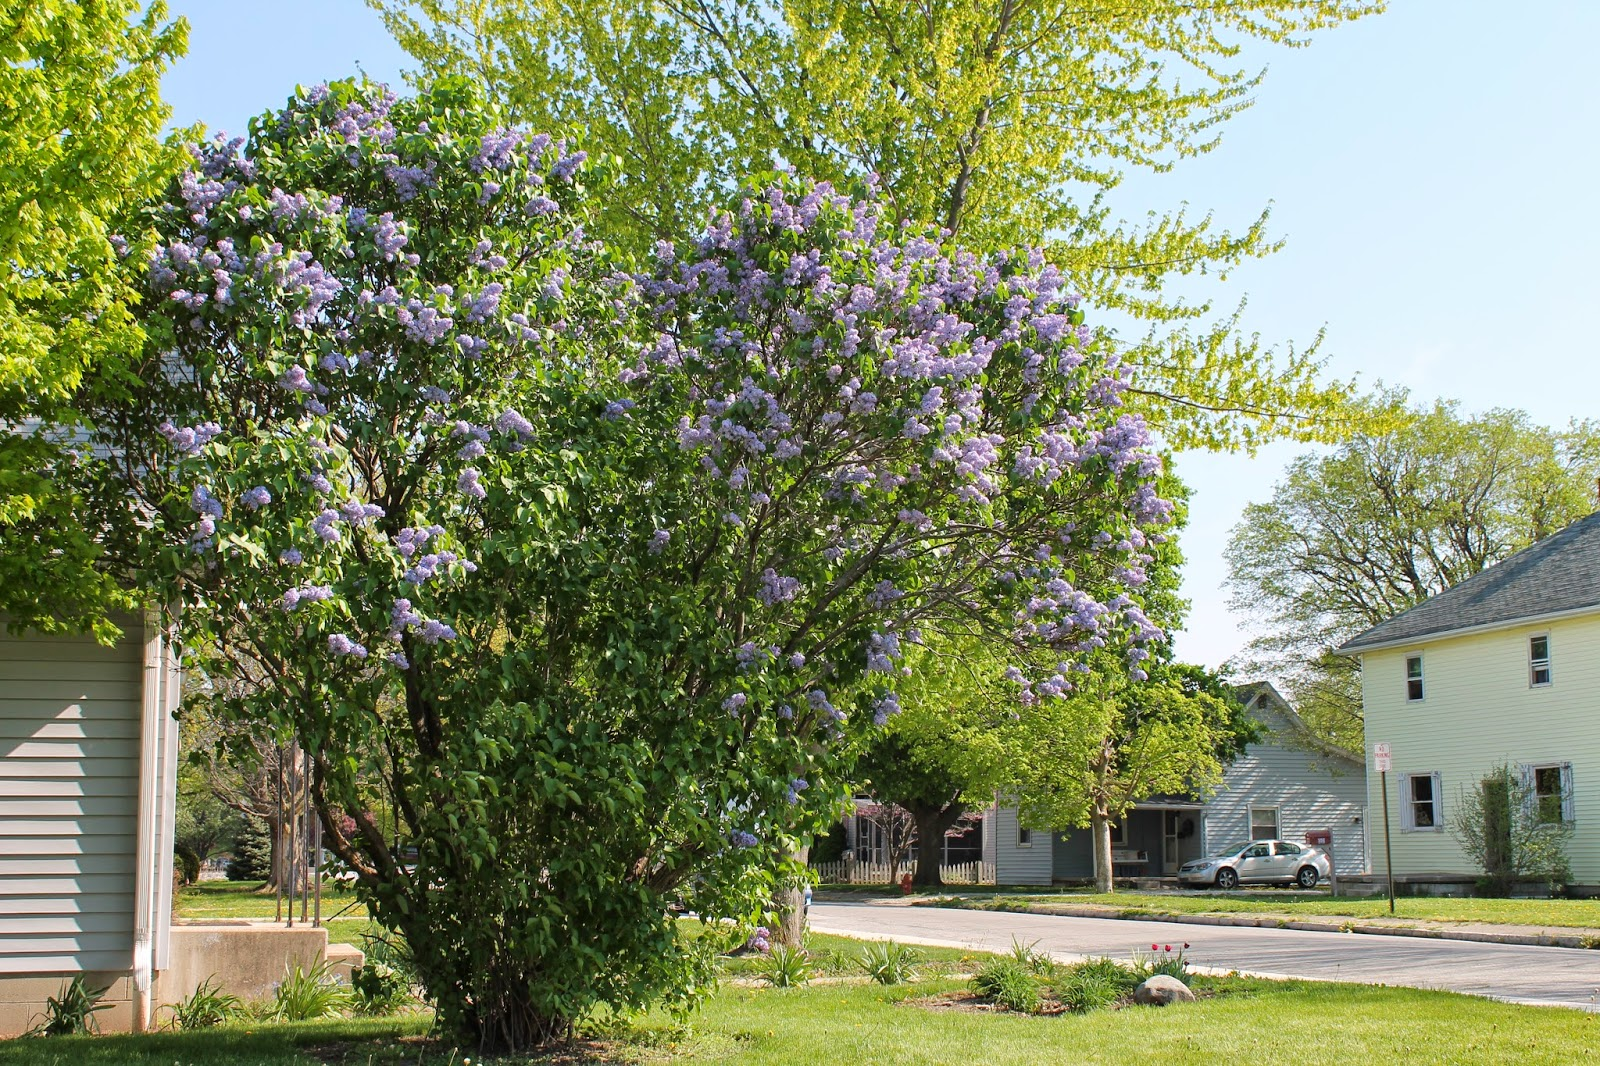 Shejunks flowering trees this is the lilac bushtree that my sister and i stood near just so we could smell that wonderful scent this picture just doesnt show how very blue izmirmasajfo